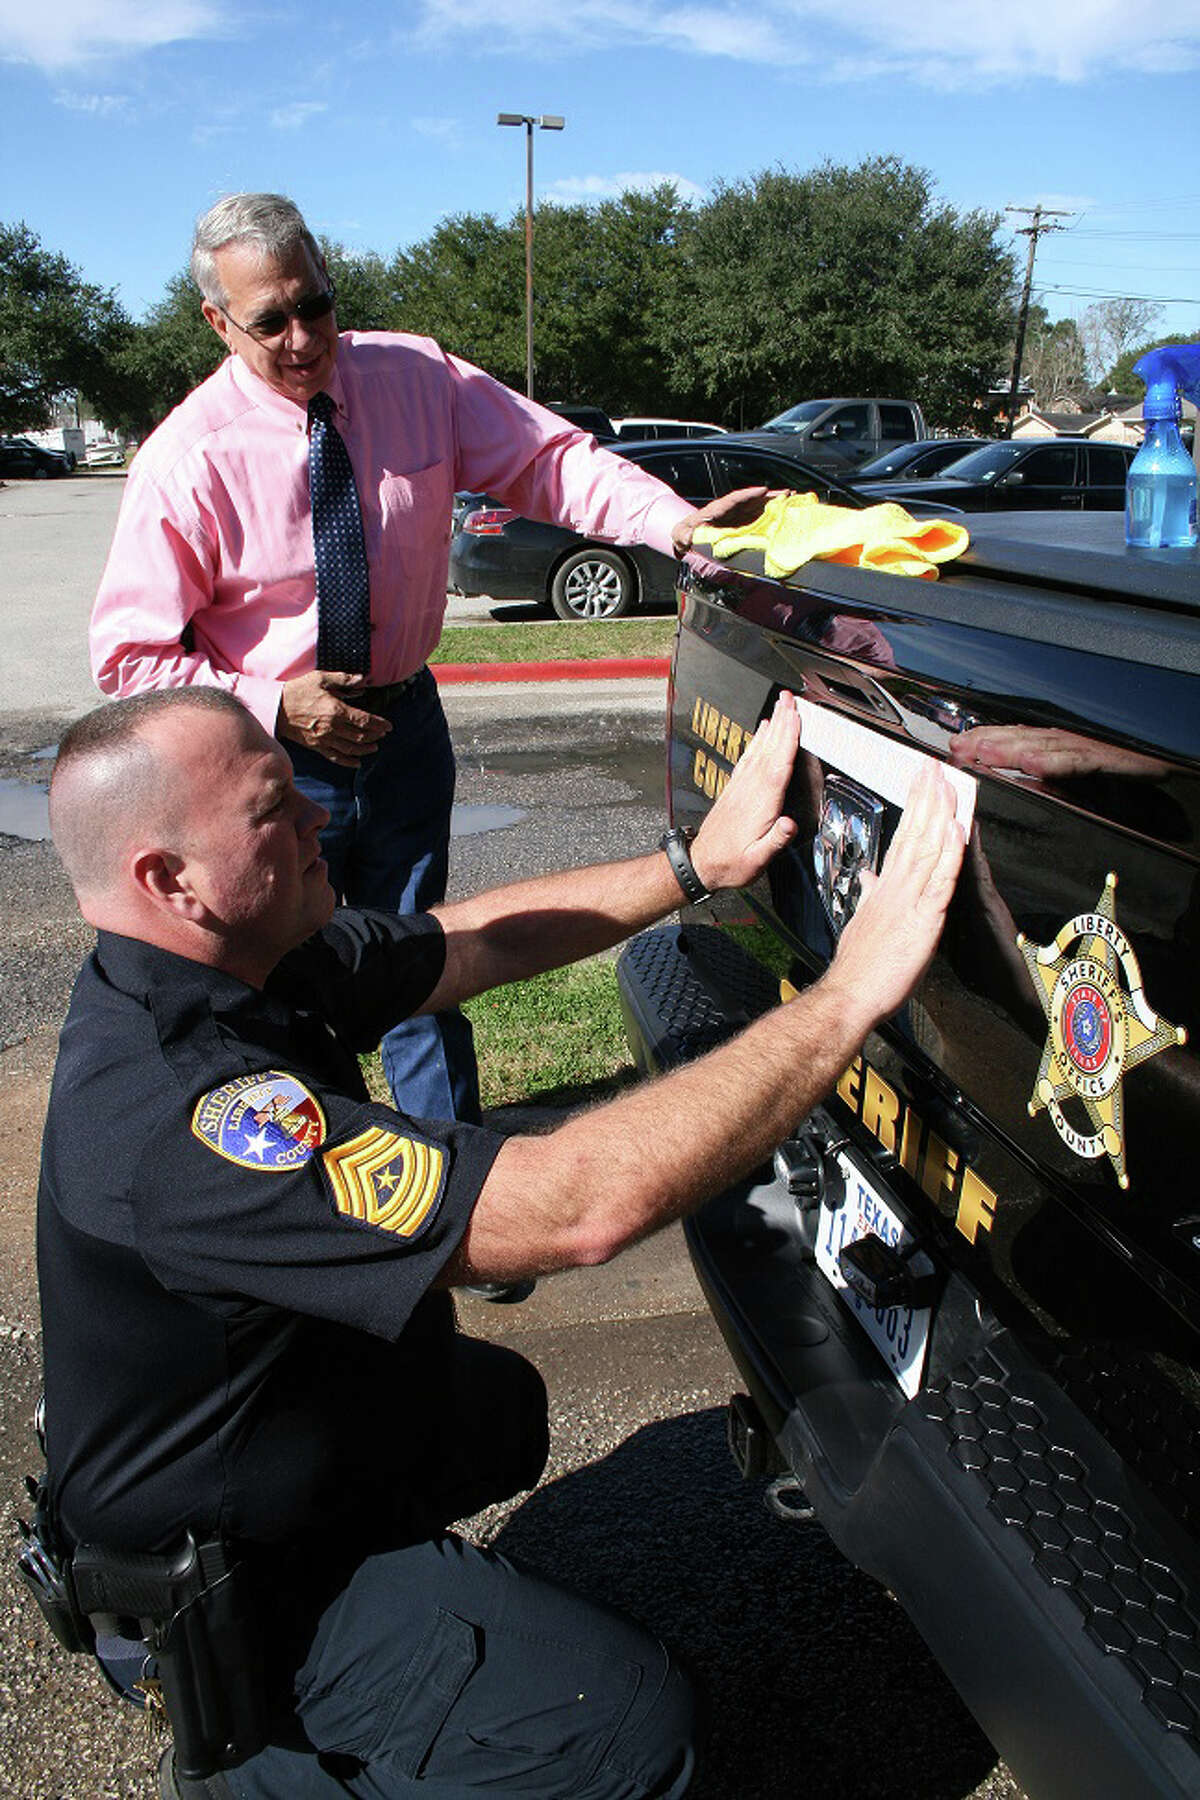 """Sheriff Bobby Rader, top, looks on as Sgt. Brett Audilet places the first decal on a patrol unit. Some of the Texas law enforcement agencies started putting é¢Ã©""""éºIn God We Trusté¢Ã©""""é¹ decals on their patrol vehicles and it seems to be a growing movement across the country that citizens of Liberty County will soon be seeing as well."""